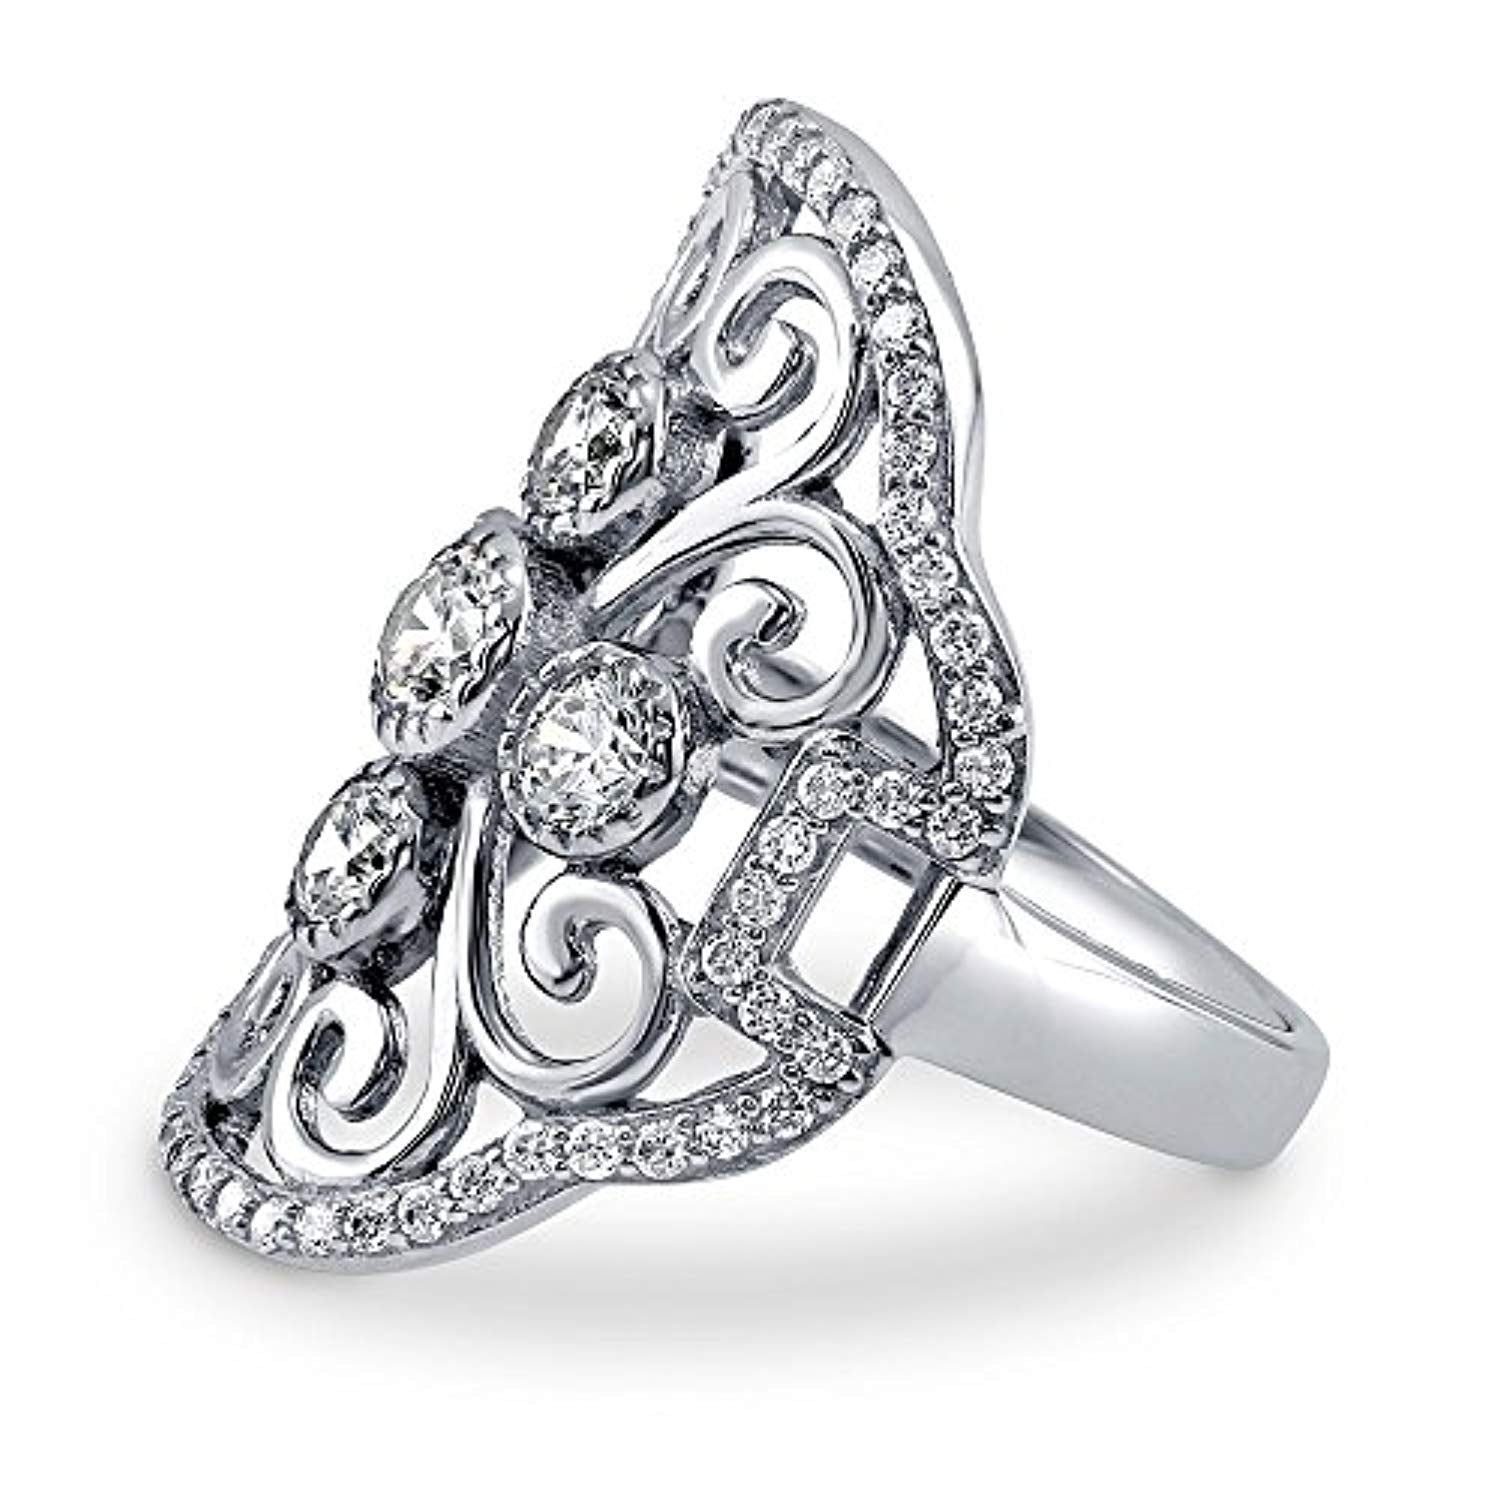 Rhodium Plated Sterling Silver Cubic Zirconia CZ Statement Art Deco Filigree Cocktail Fashion Right Hand Ring